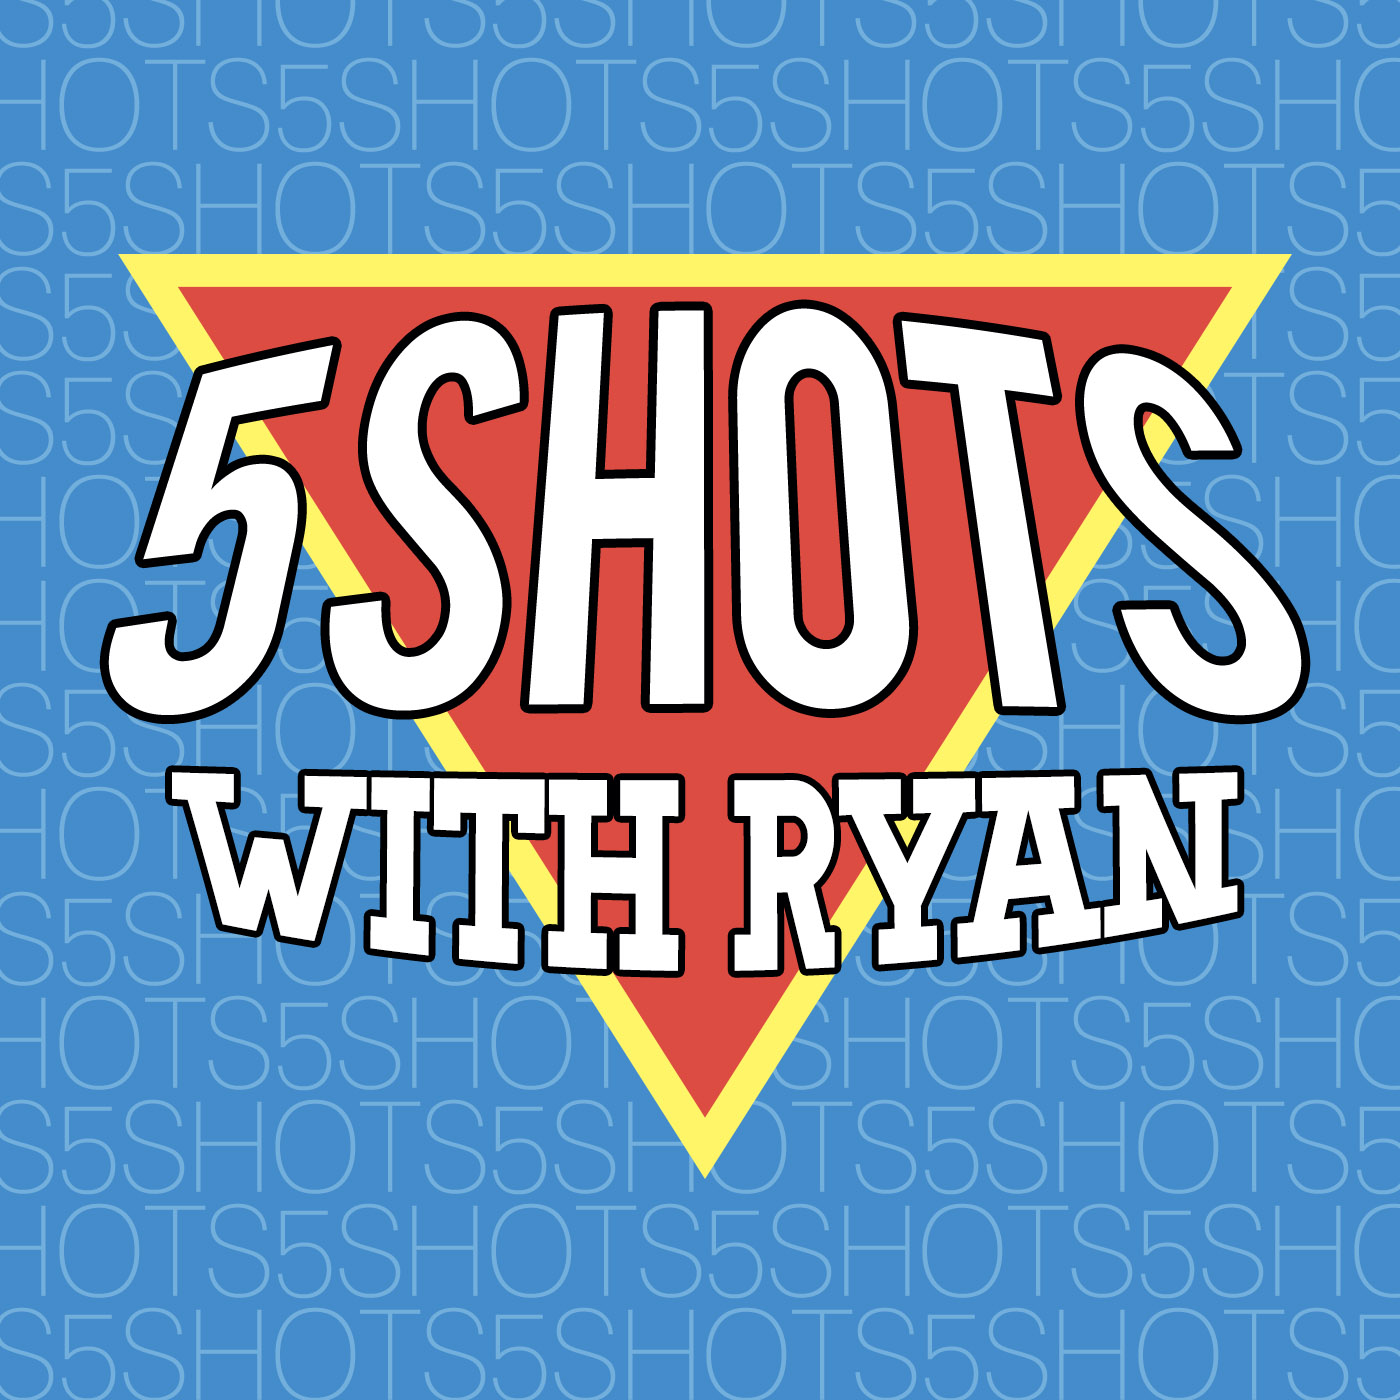 Five Shots With Ryan